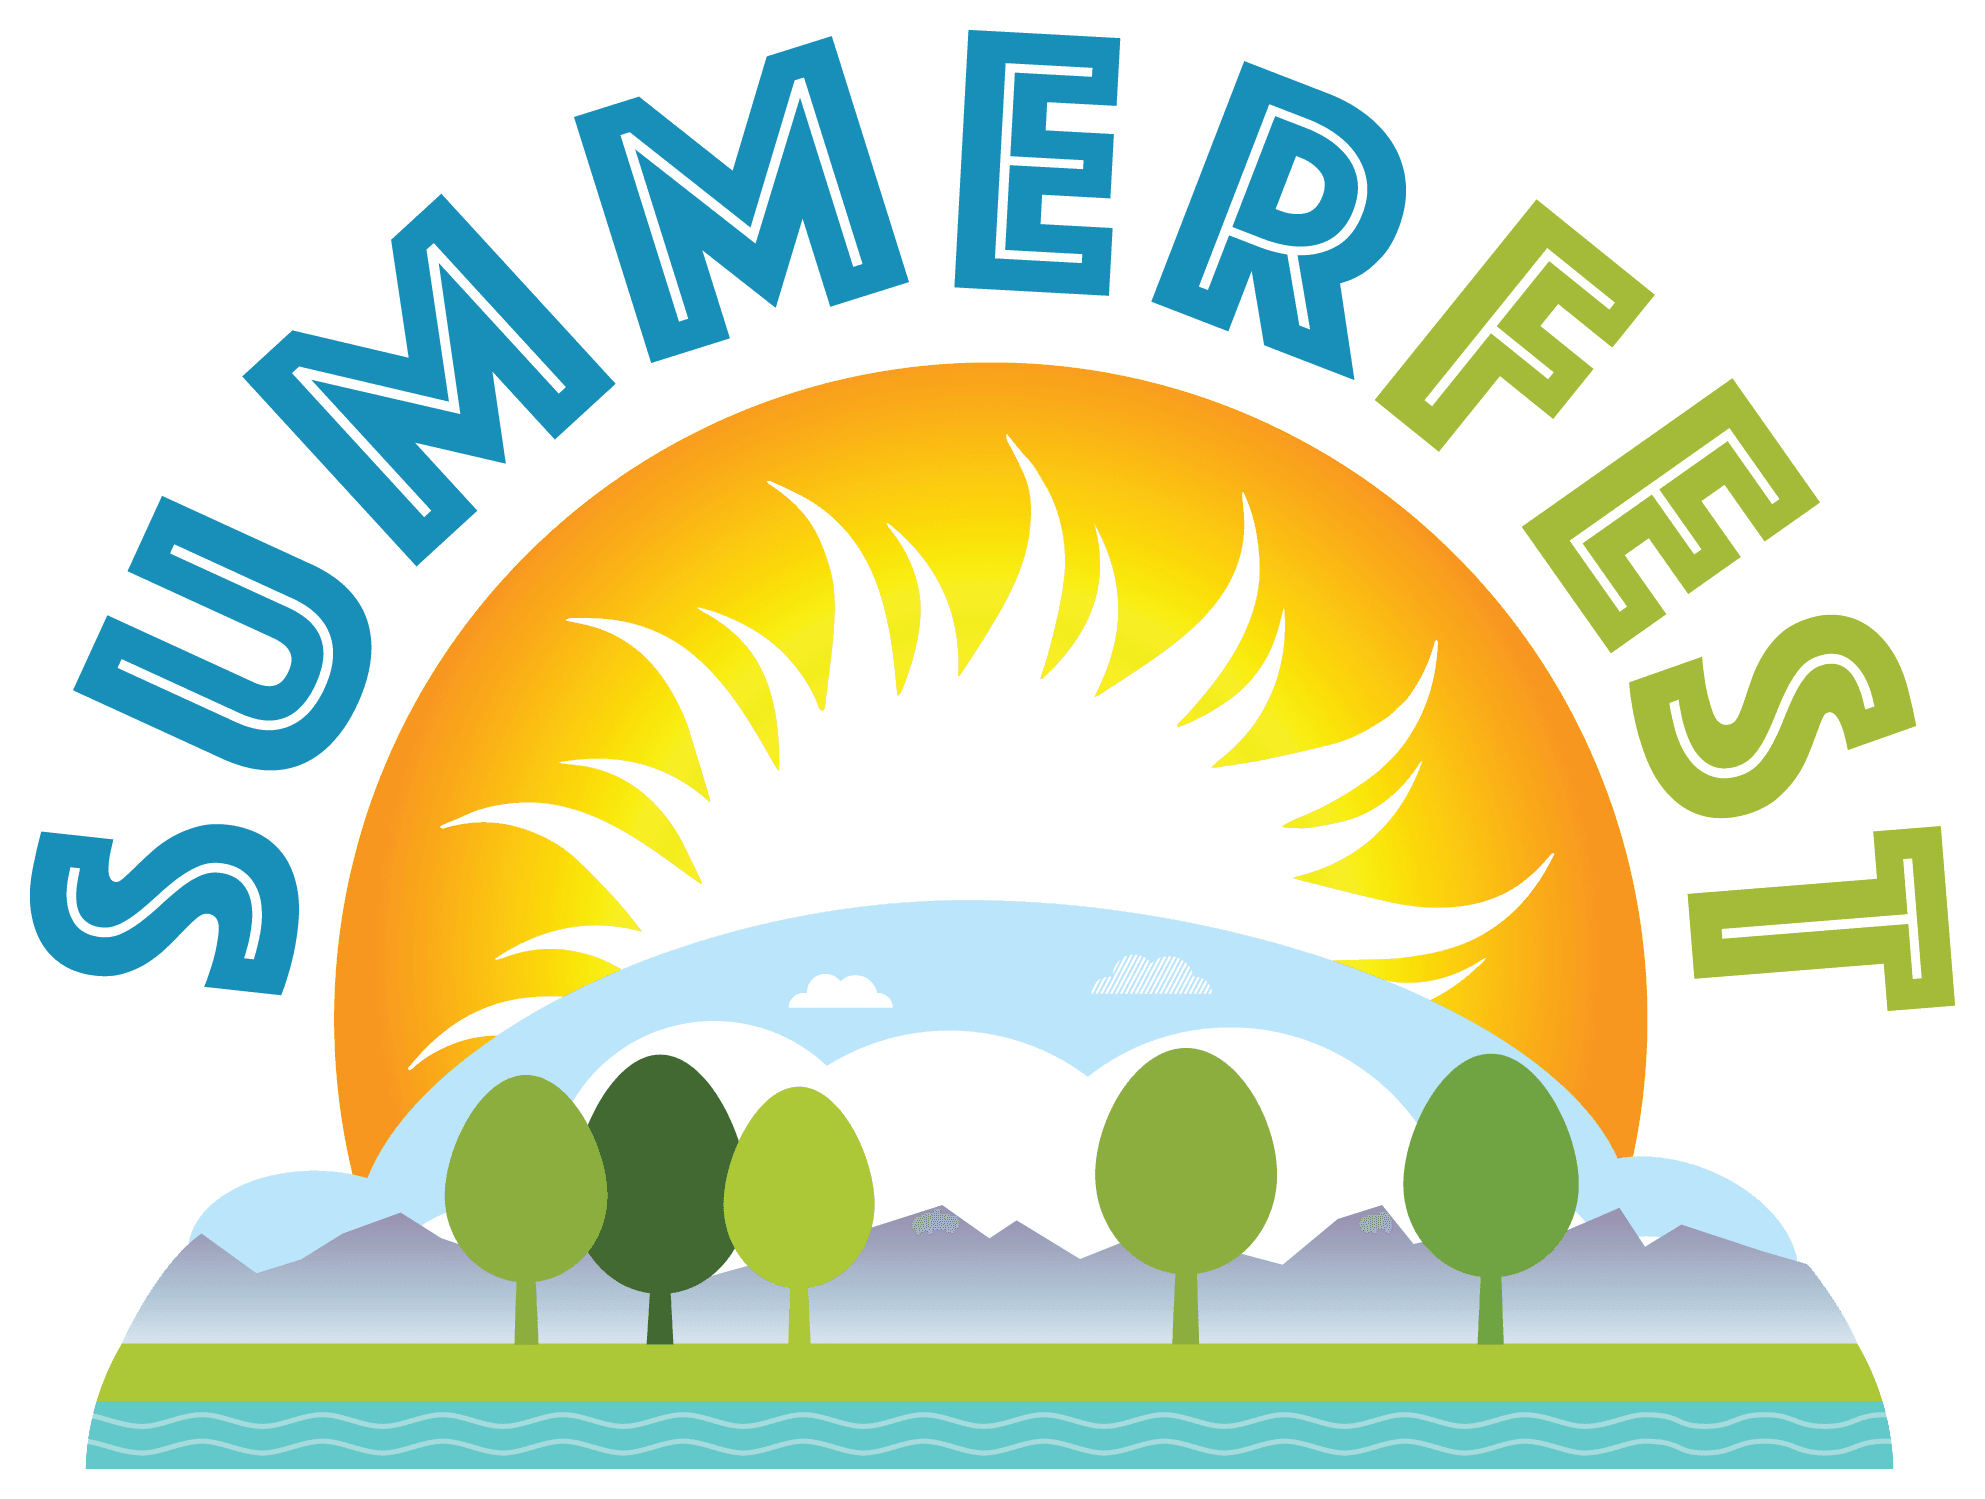 Garden clipart family. Summerfest brighton colorado summerfestlogotransparent